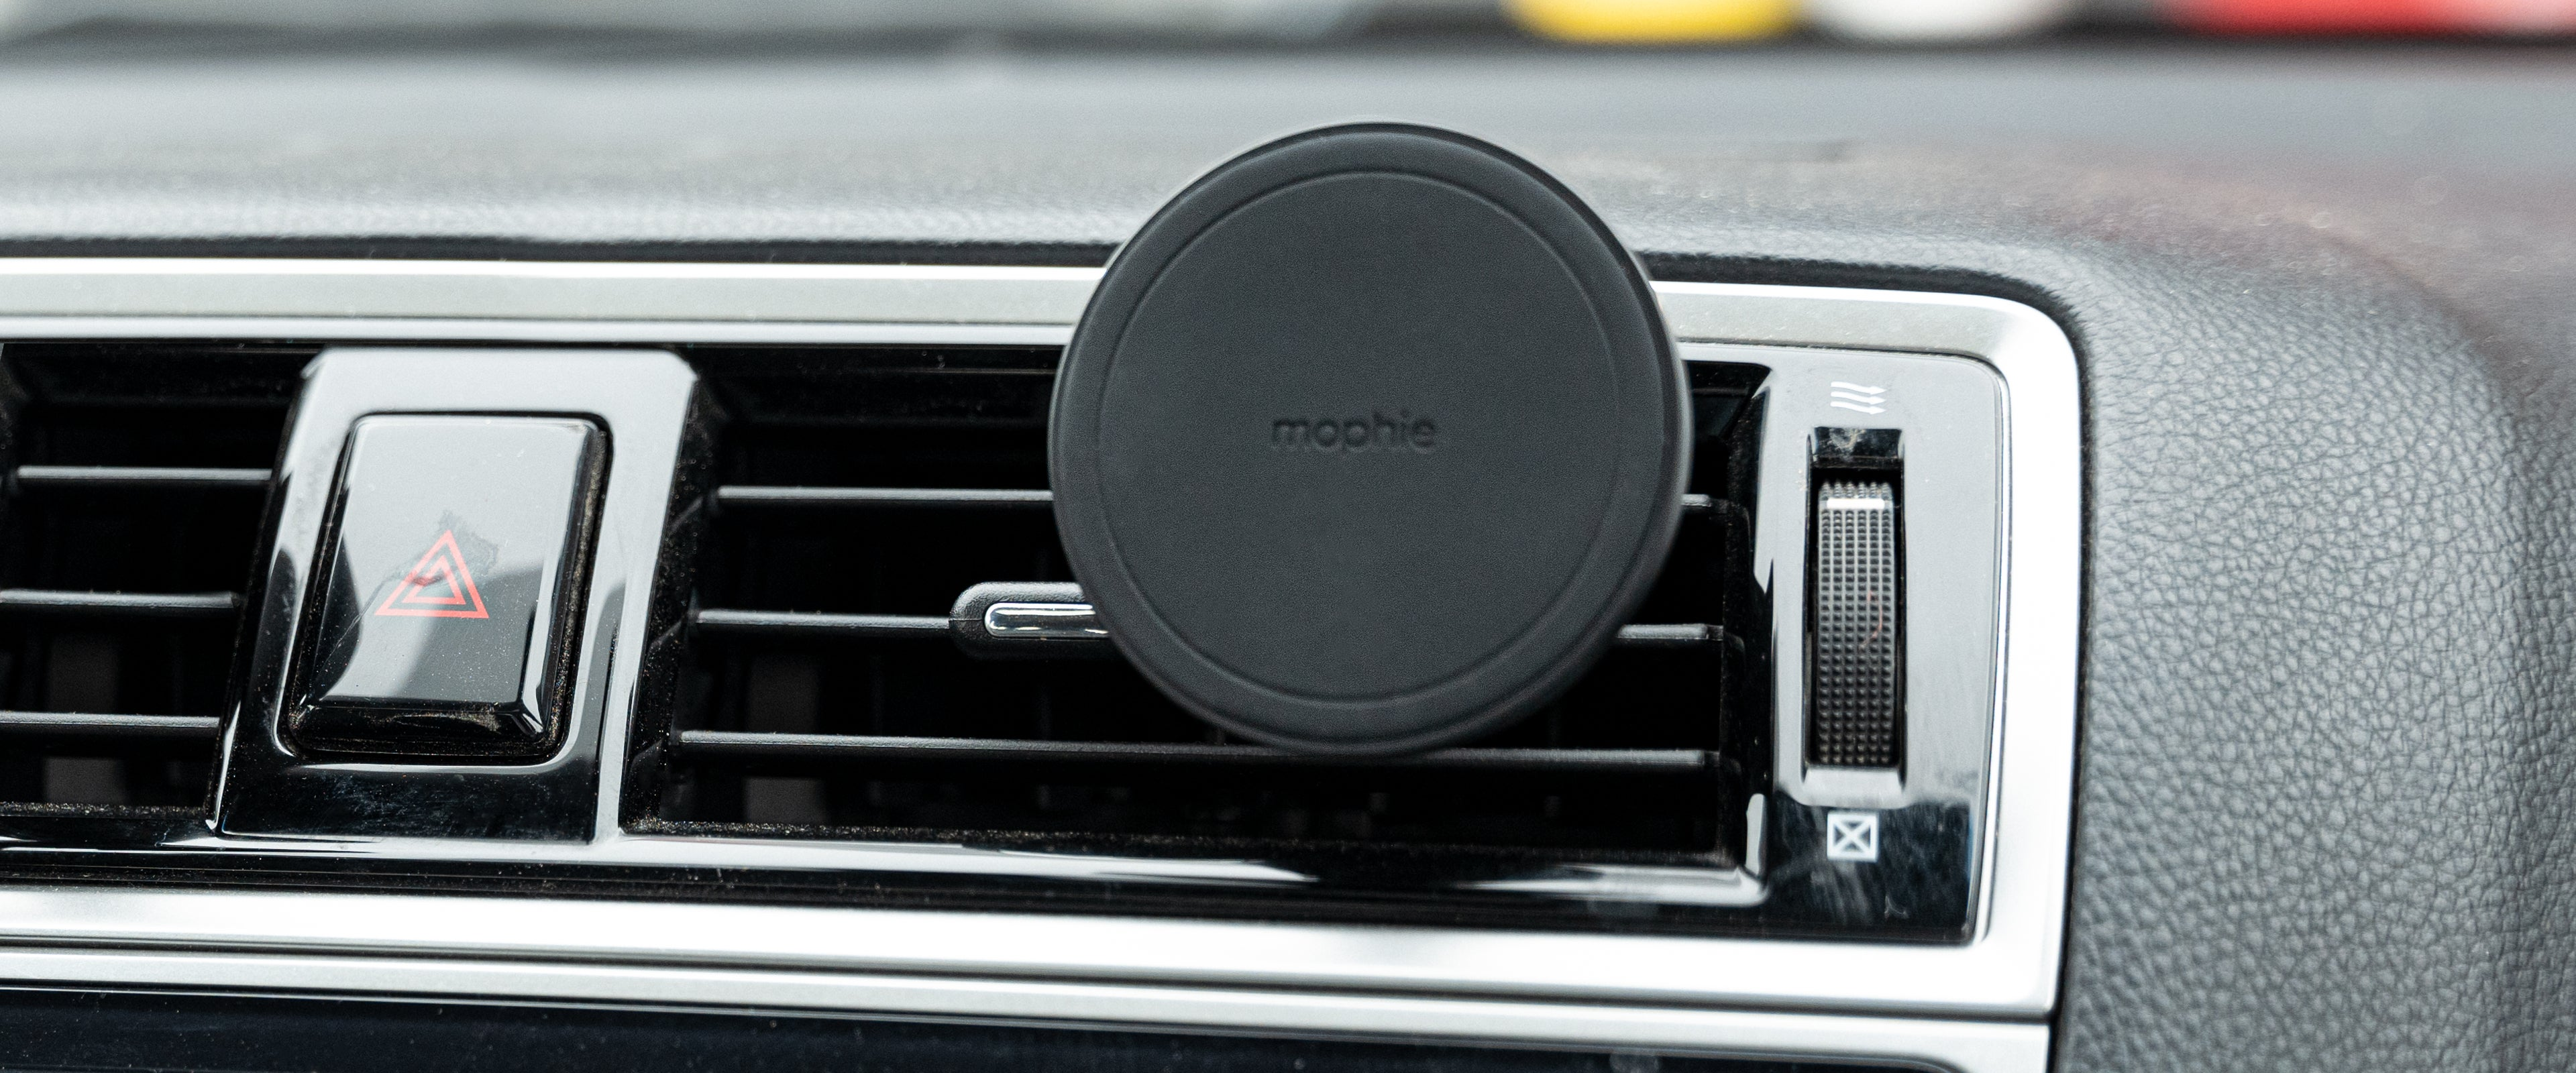 snap vent mount accessory